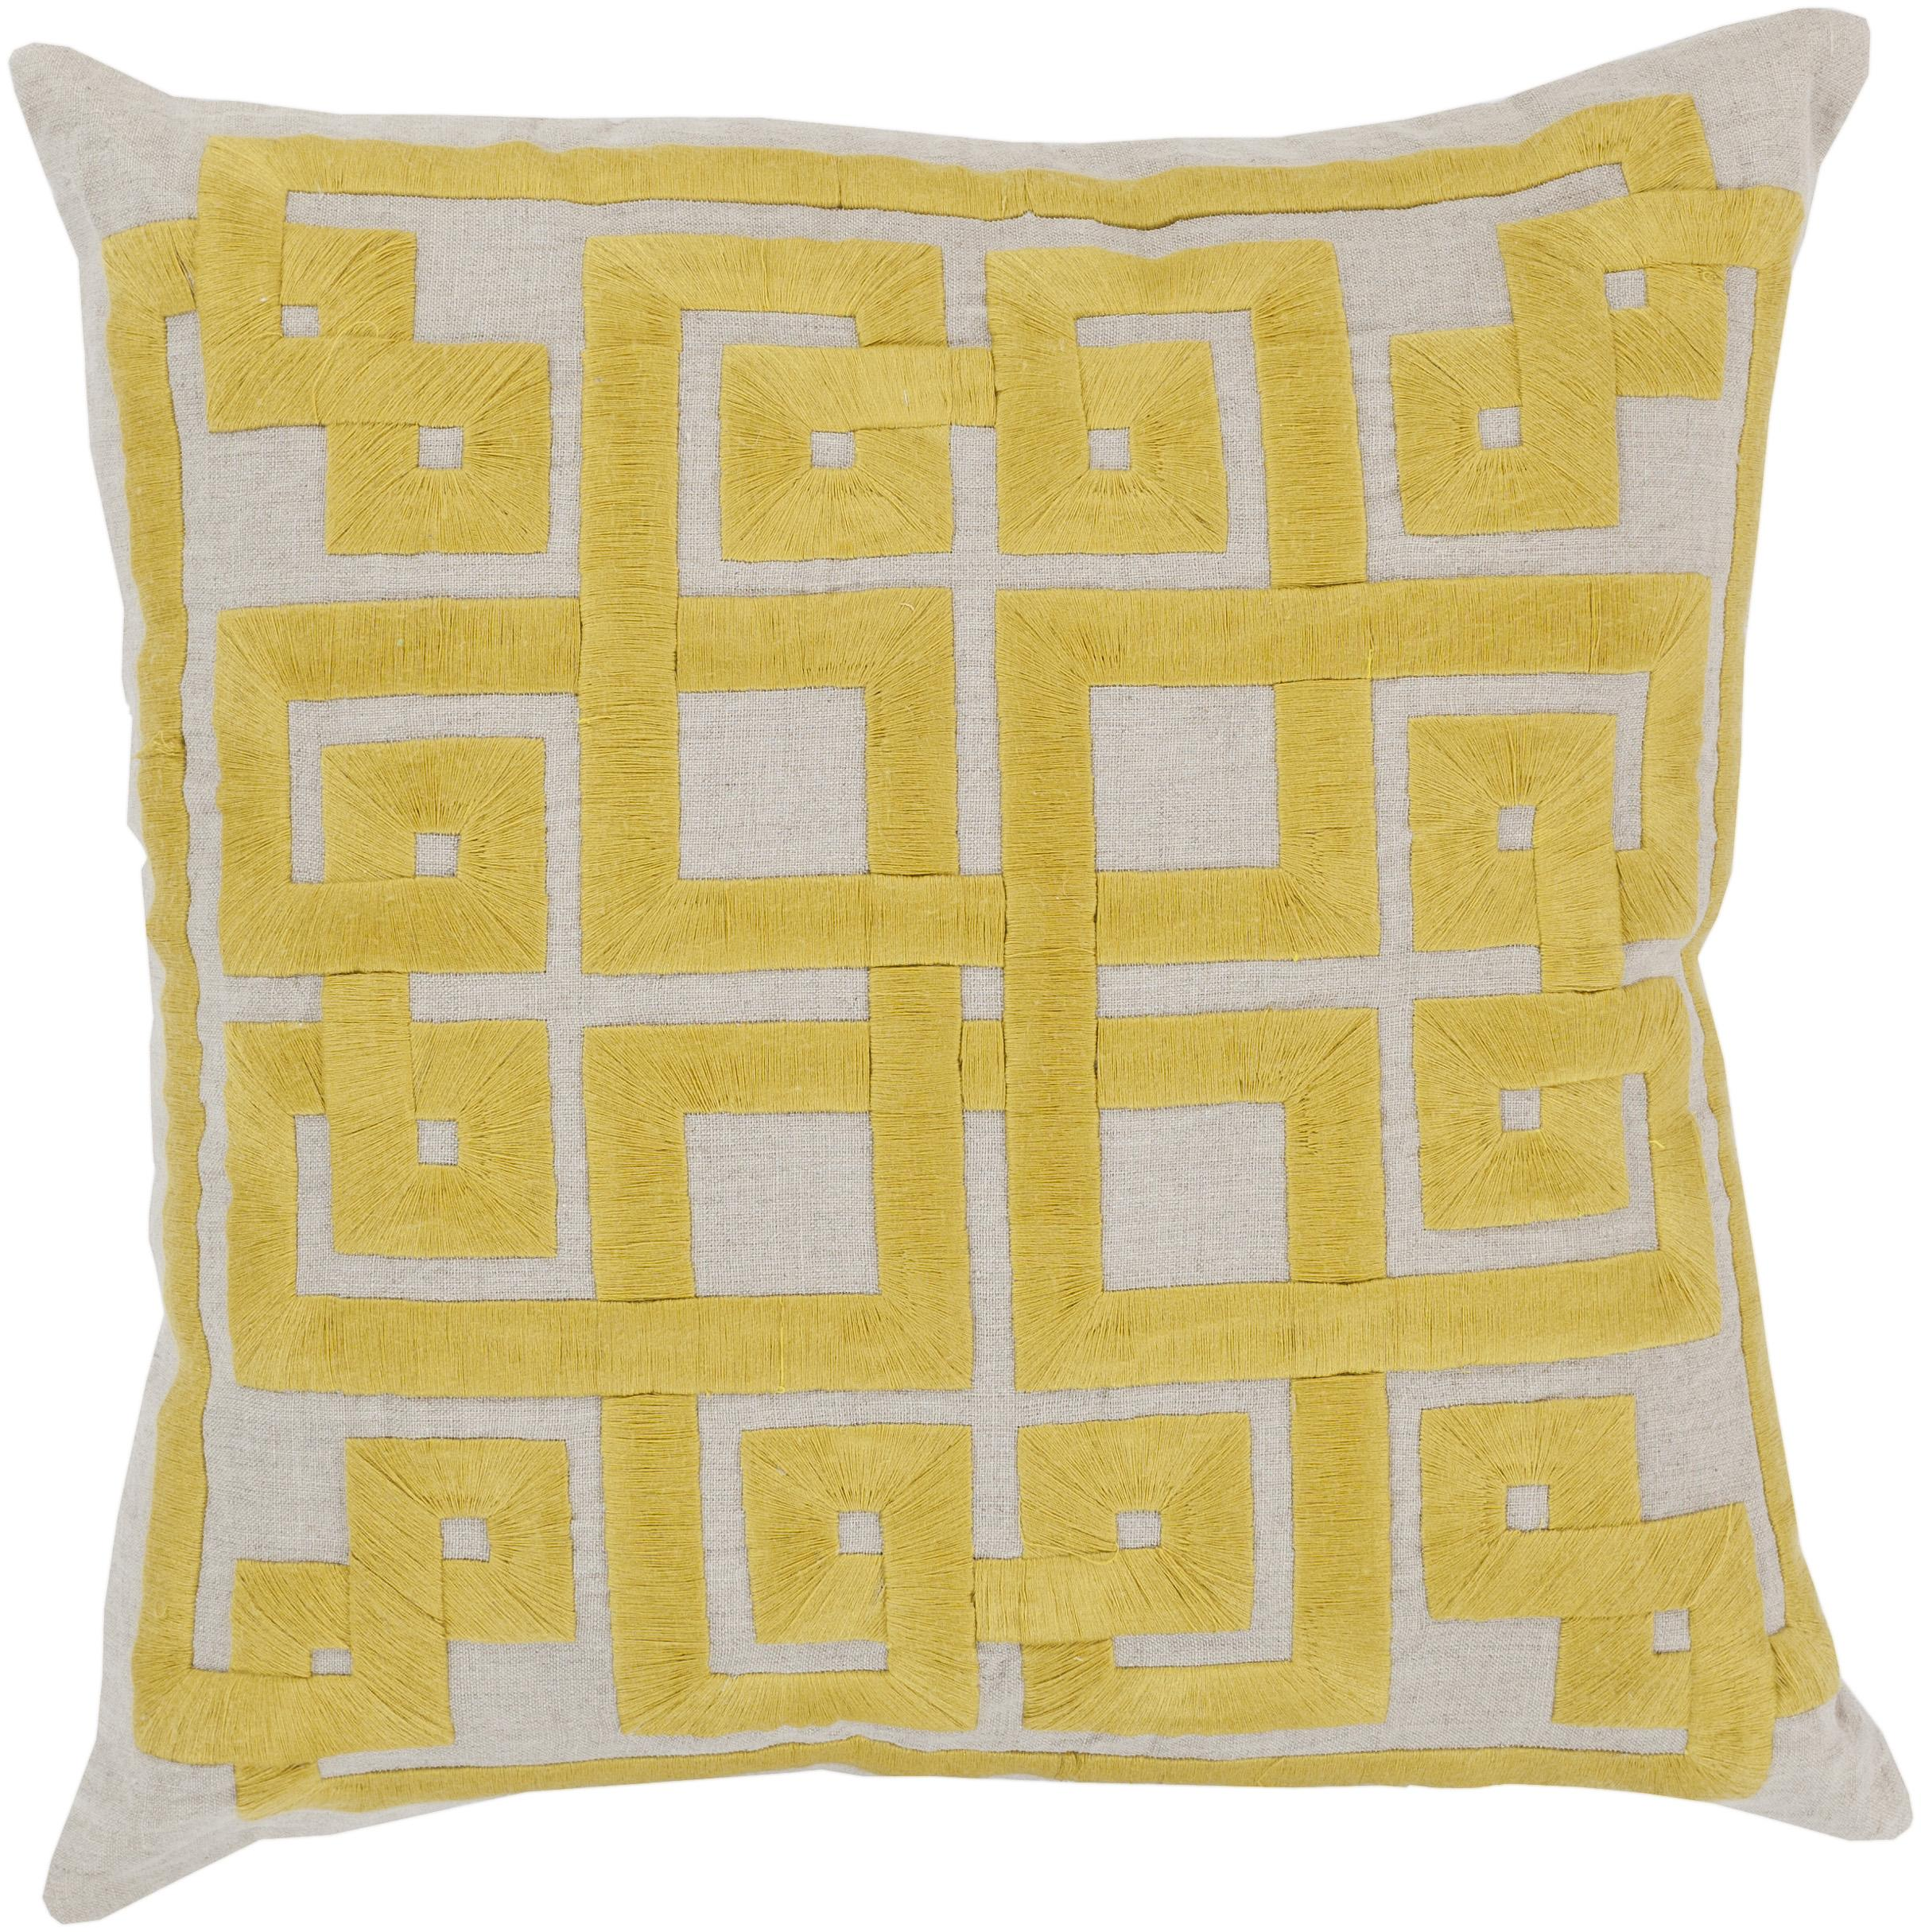 "Surya Rugs Pillows 18"" x 18"" Pillow - Item Number: LD005-1818P"